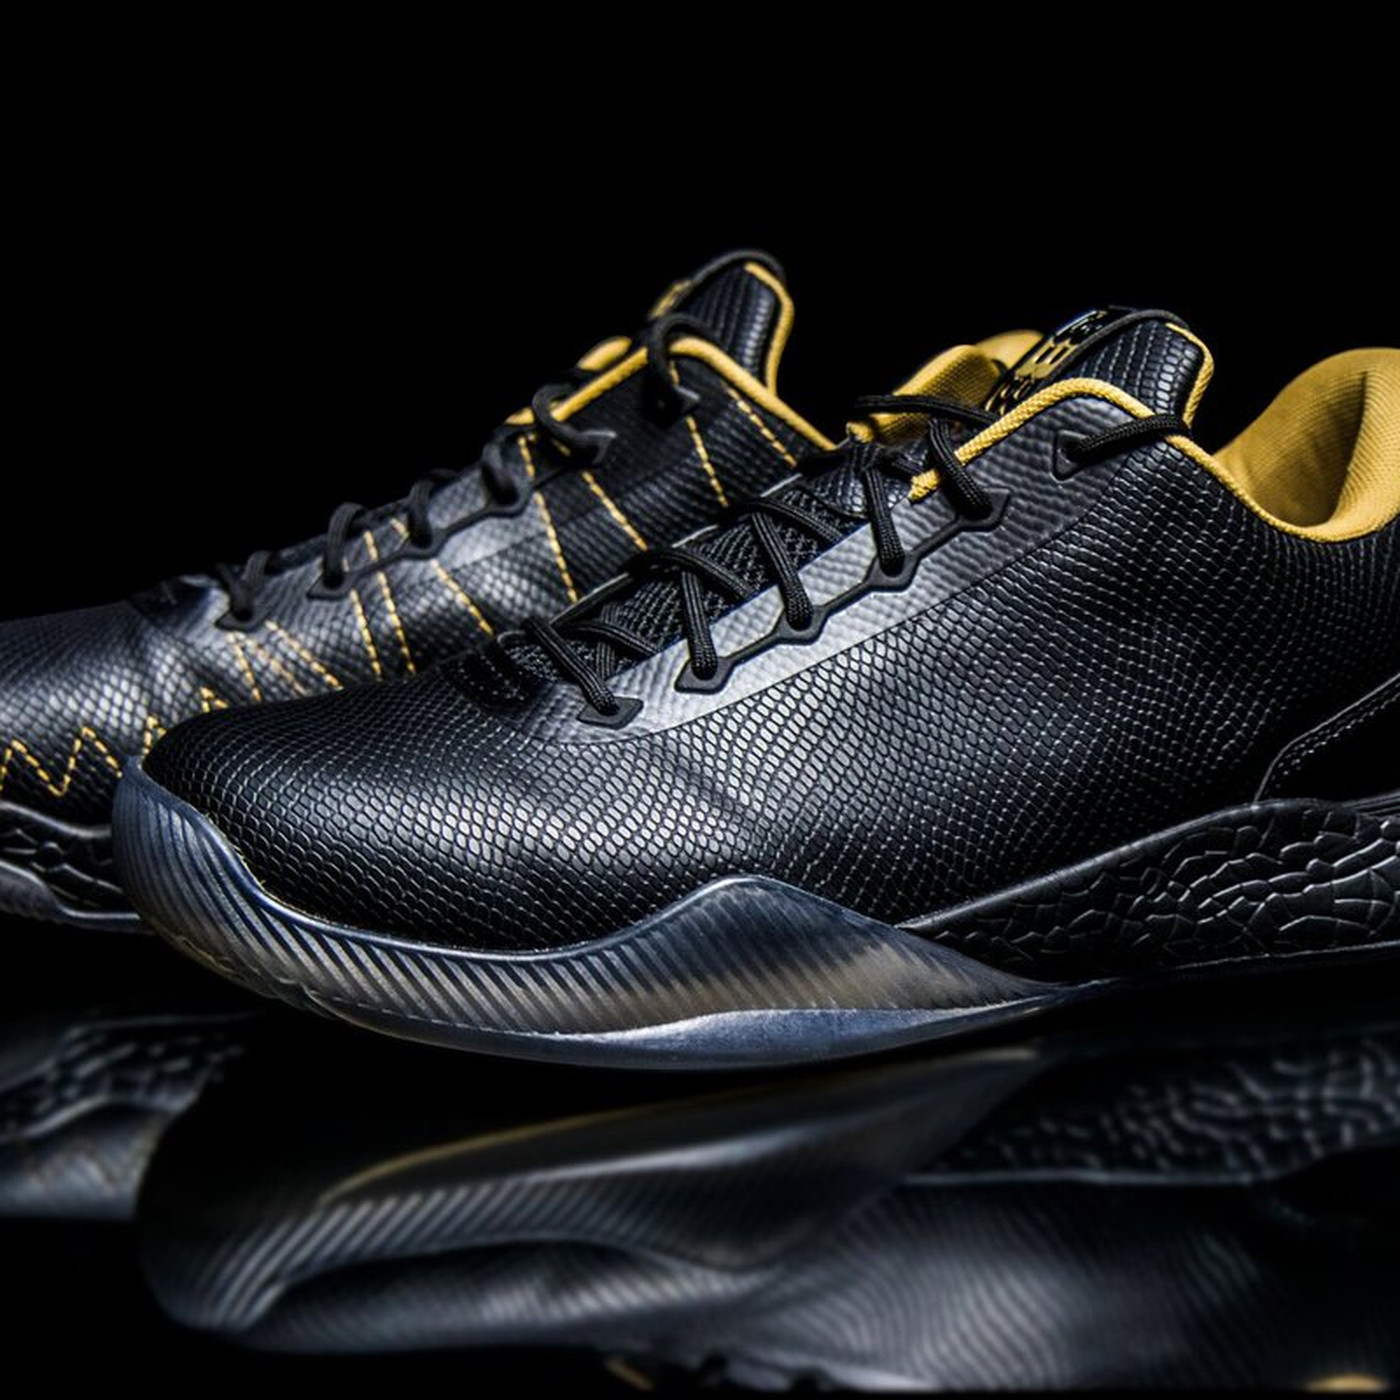 cfca079d10aa Lonzo Ball s shoes look great